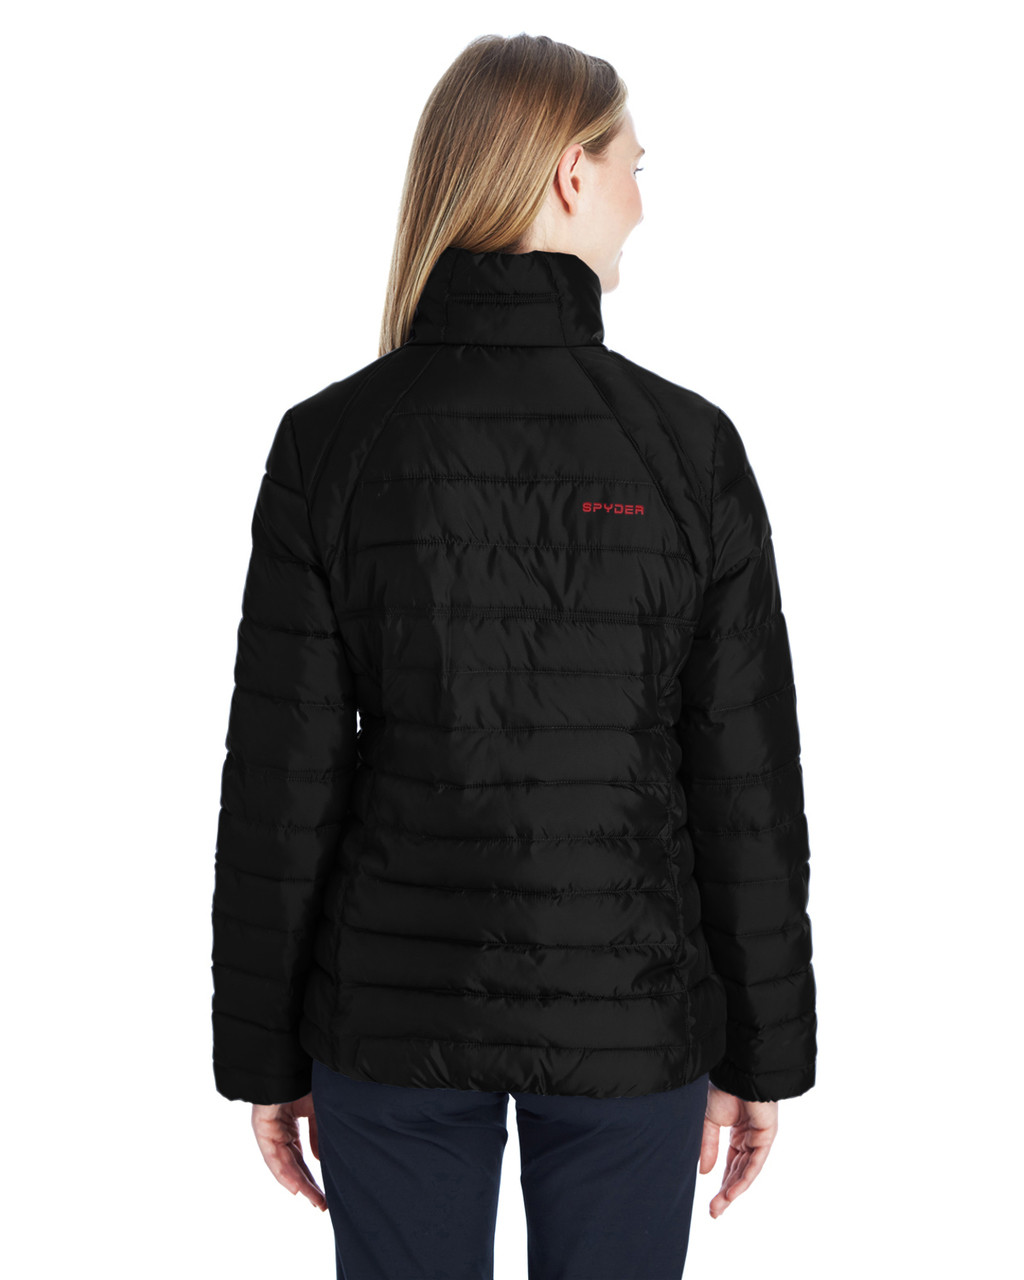 Black/Red, Back - 187336 Spyder Ladies' Supreme Insulated Puffer Jacket | BlankClothing.ca